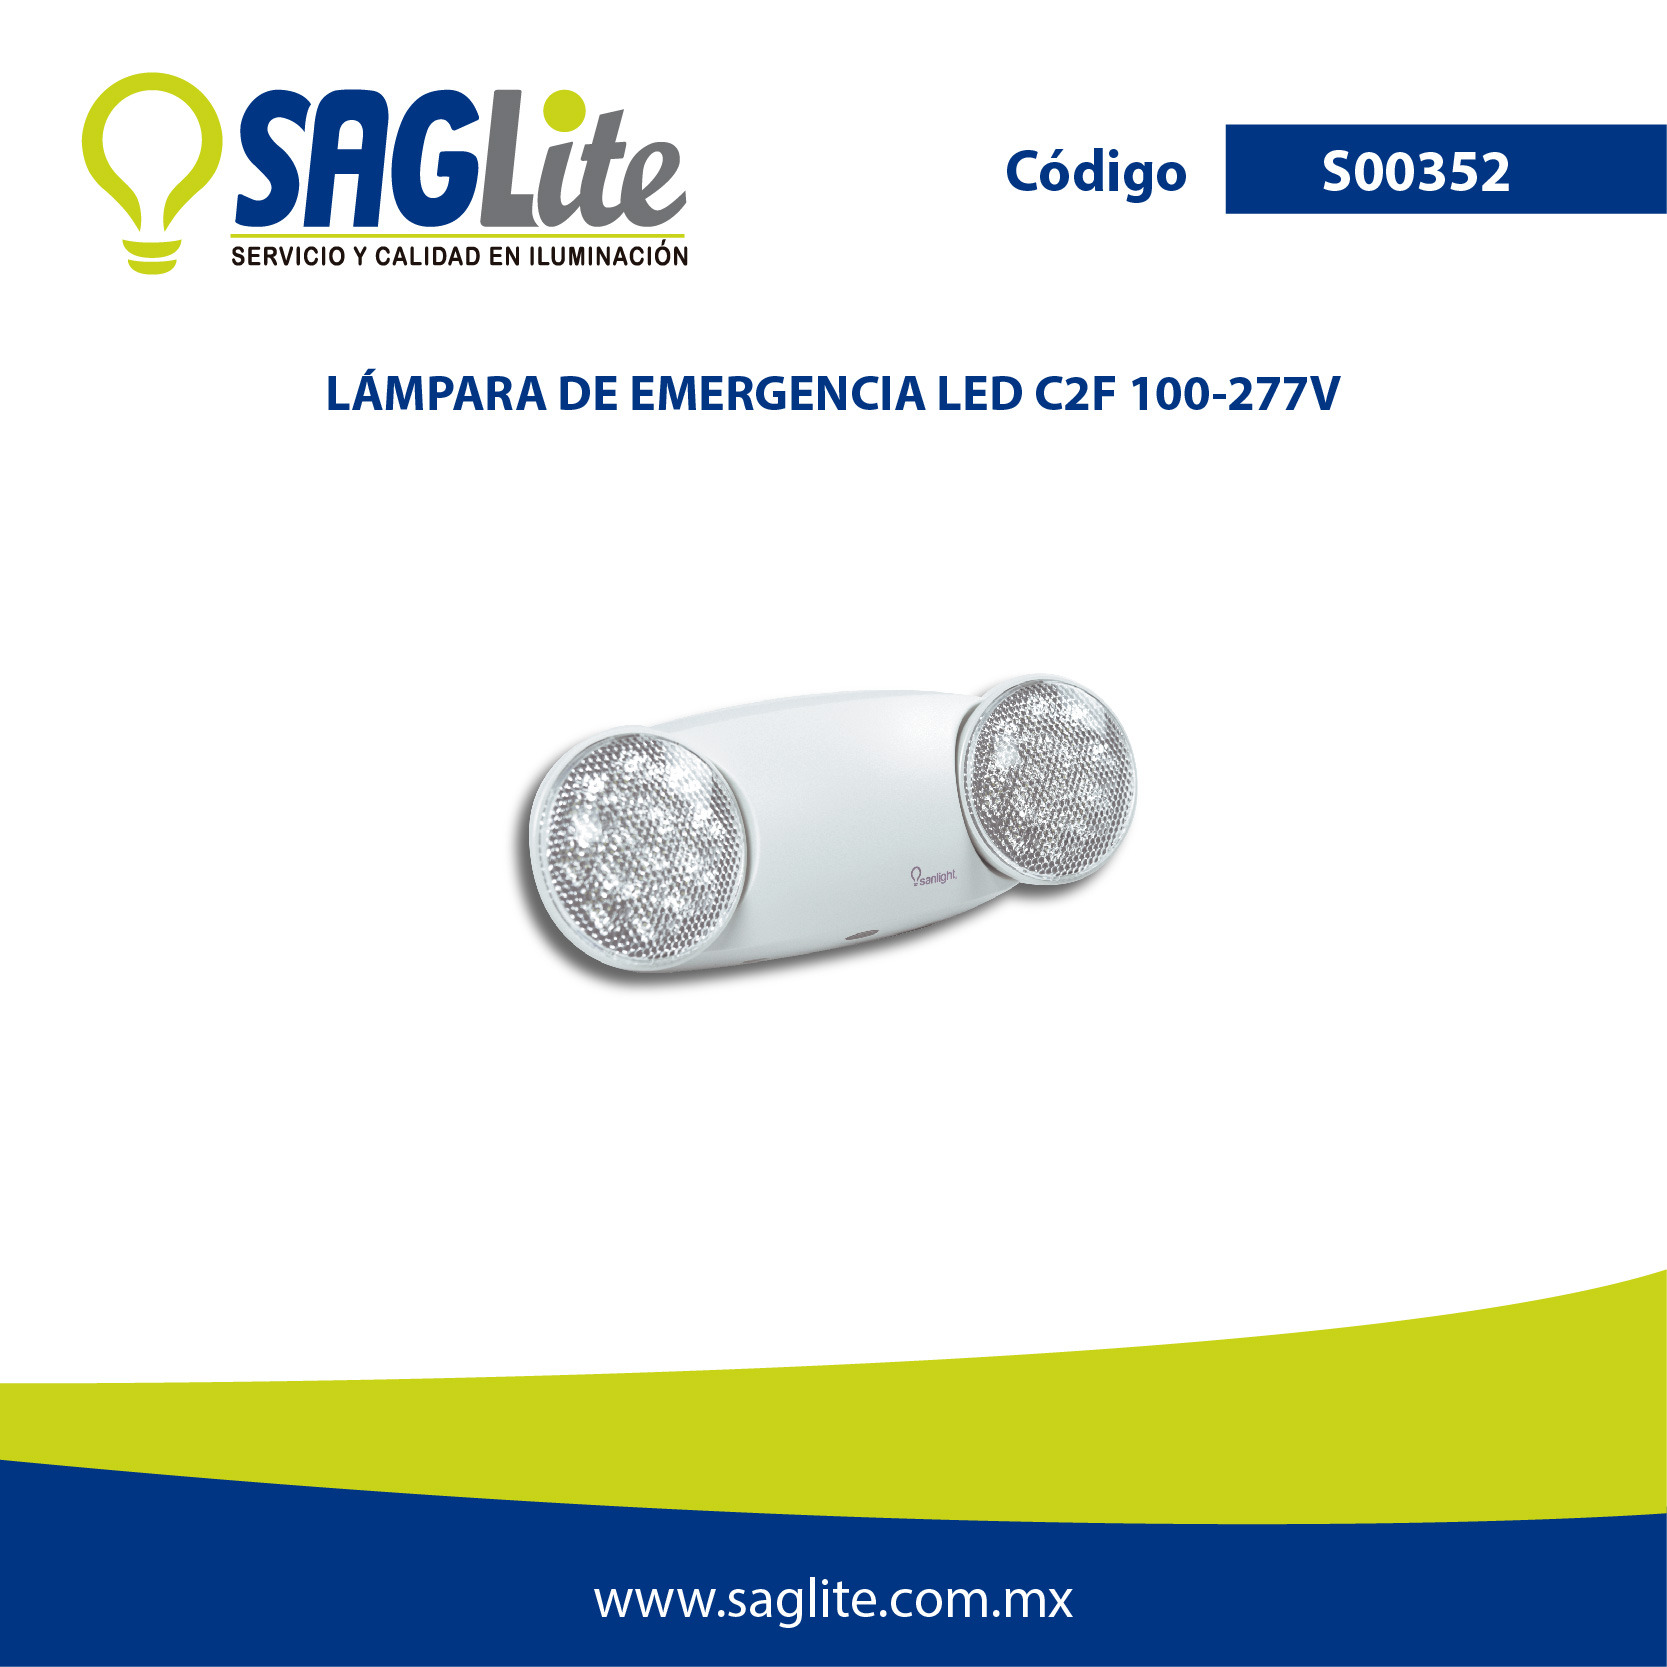 Lamparas De Emergencia Led Lampara Emergencia Led R2f 100 277v Saglite Saglite